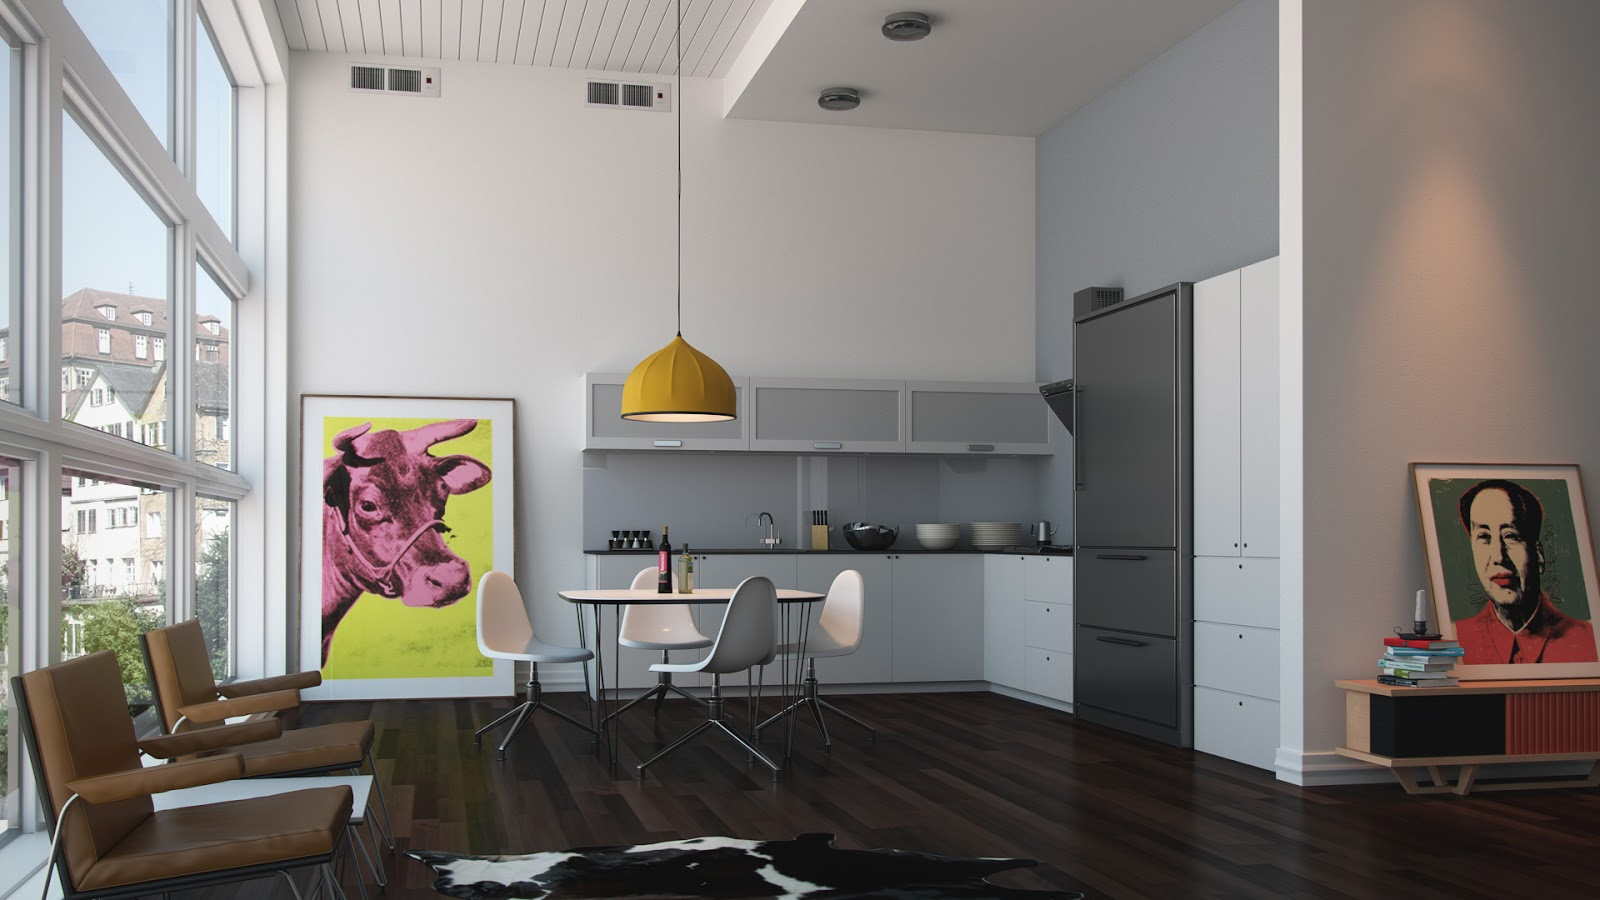 Download free 3ds max and vray interior scene cg daily news for Vray interior lighting rendering tutorial